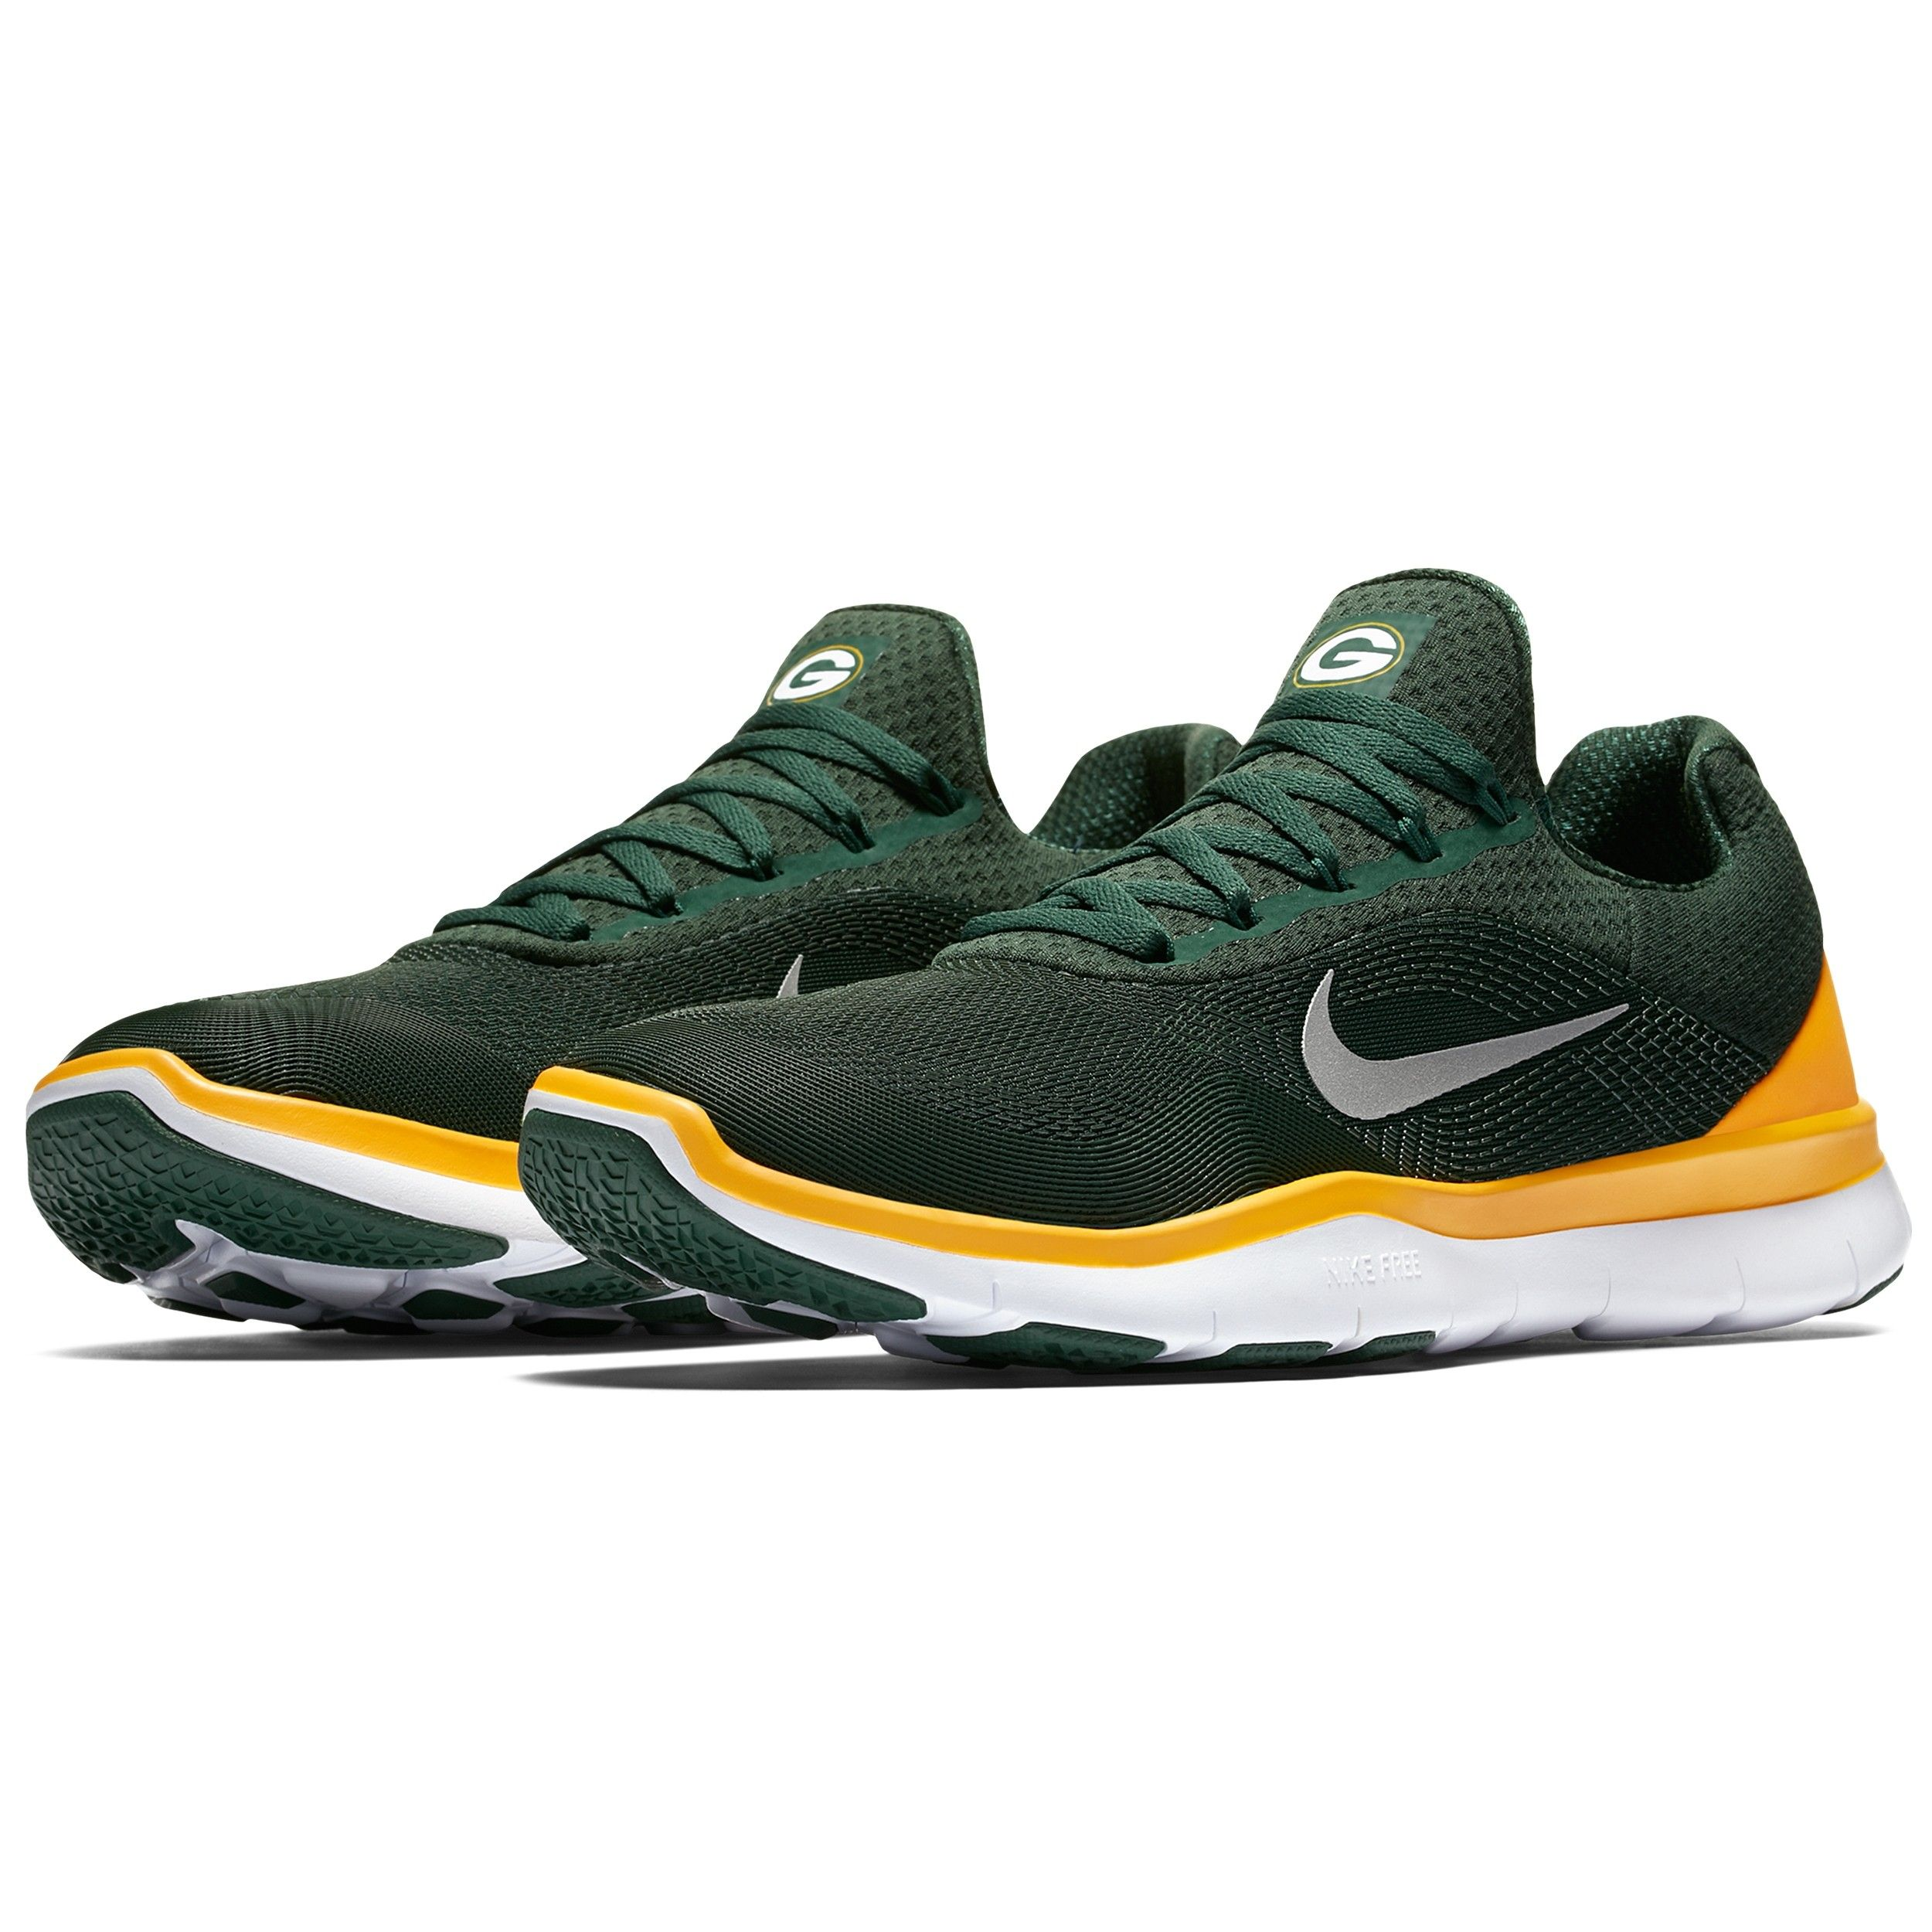 nike free trainer versatility 2016 chevy